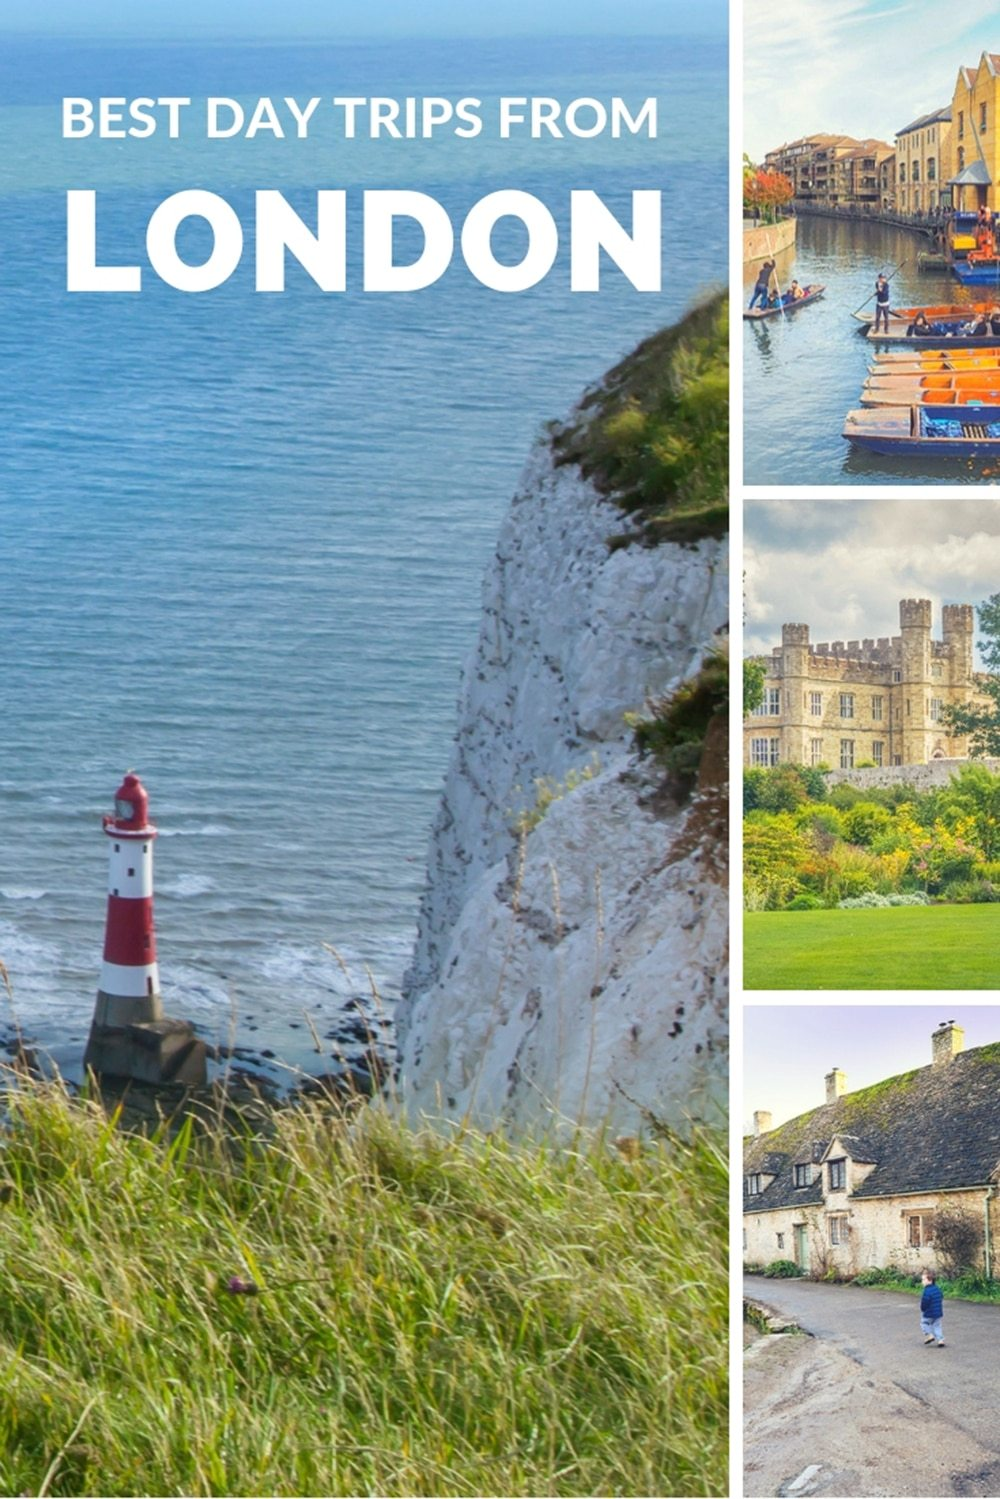 20 Best Day Trips from London